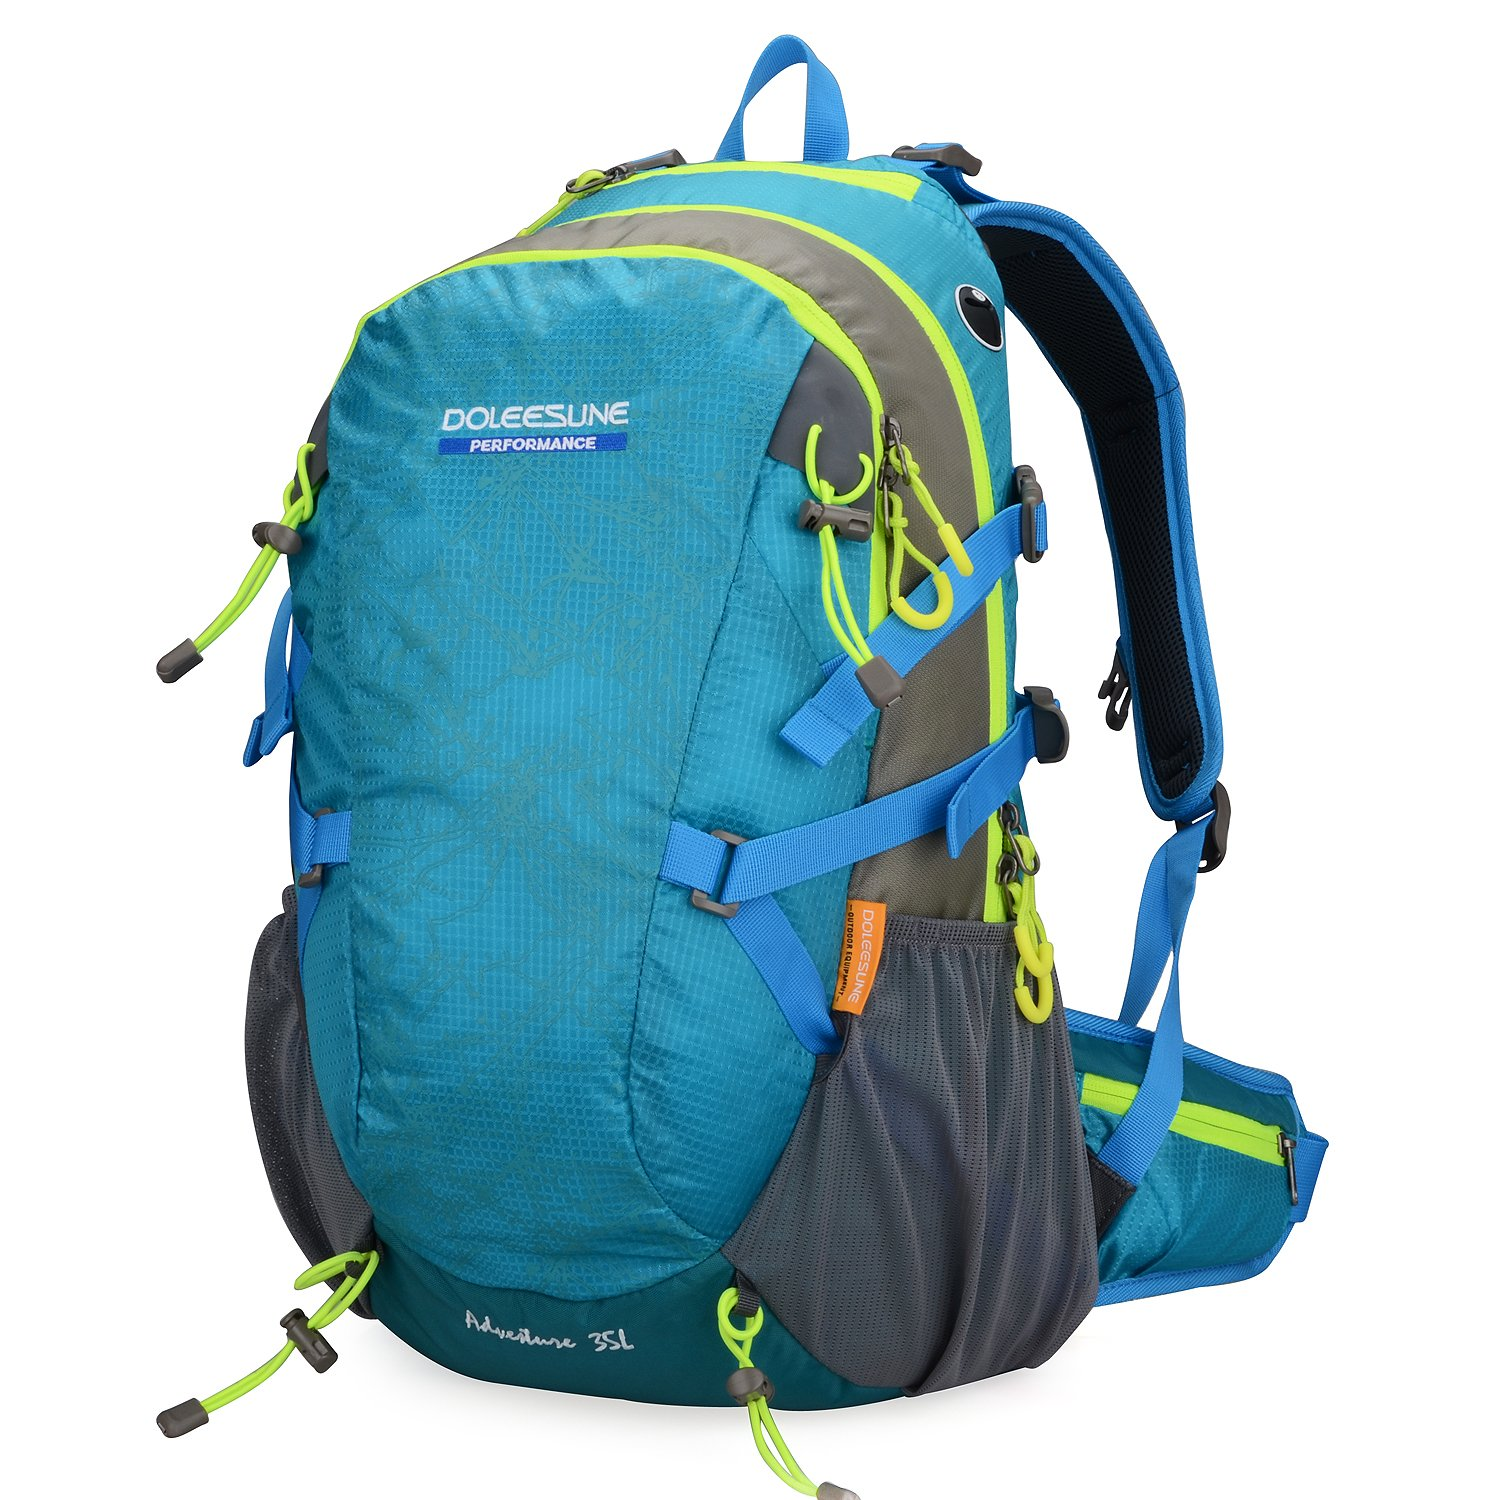 28f37334a Amazon.com : Doleesune Outdoor Hiking Daypacks Climbing Cycling Backpack  Hiking Backpacking Packs Waterproof Mountaineering Bag 35l 8103(Blue) :  Sports & ...